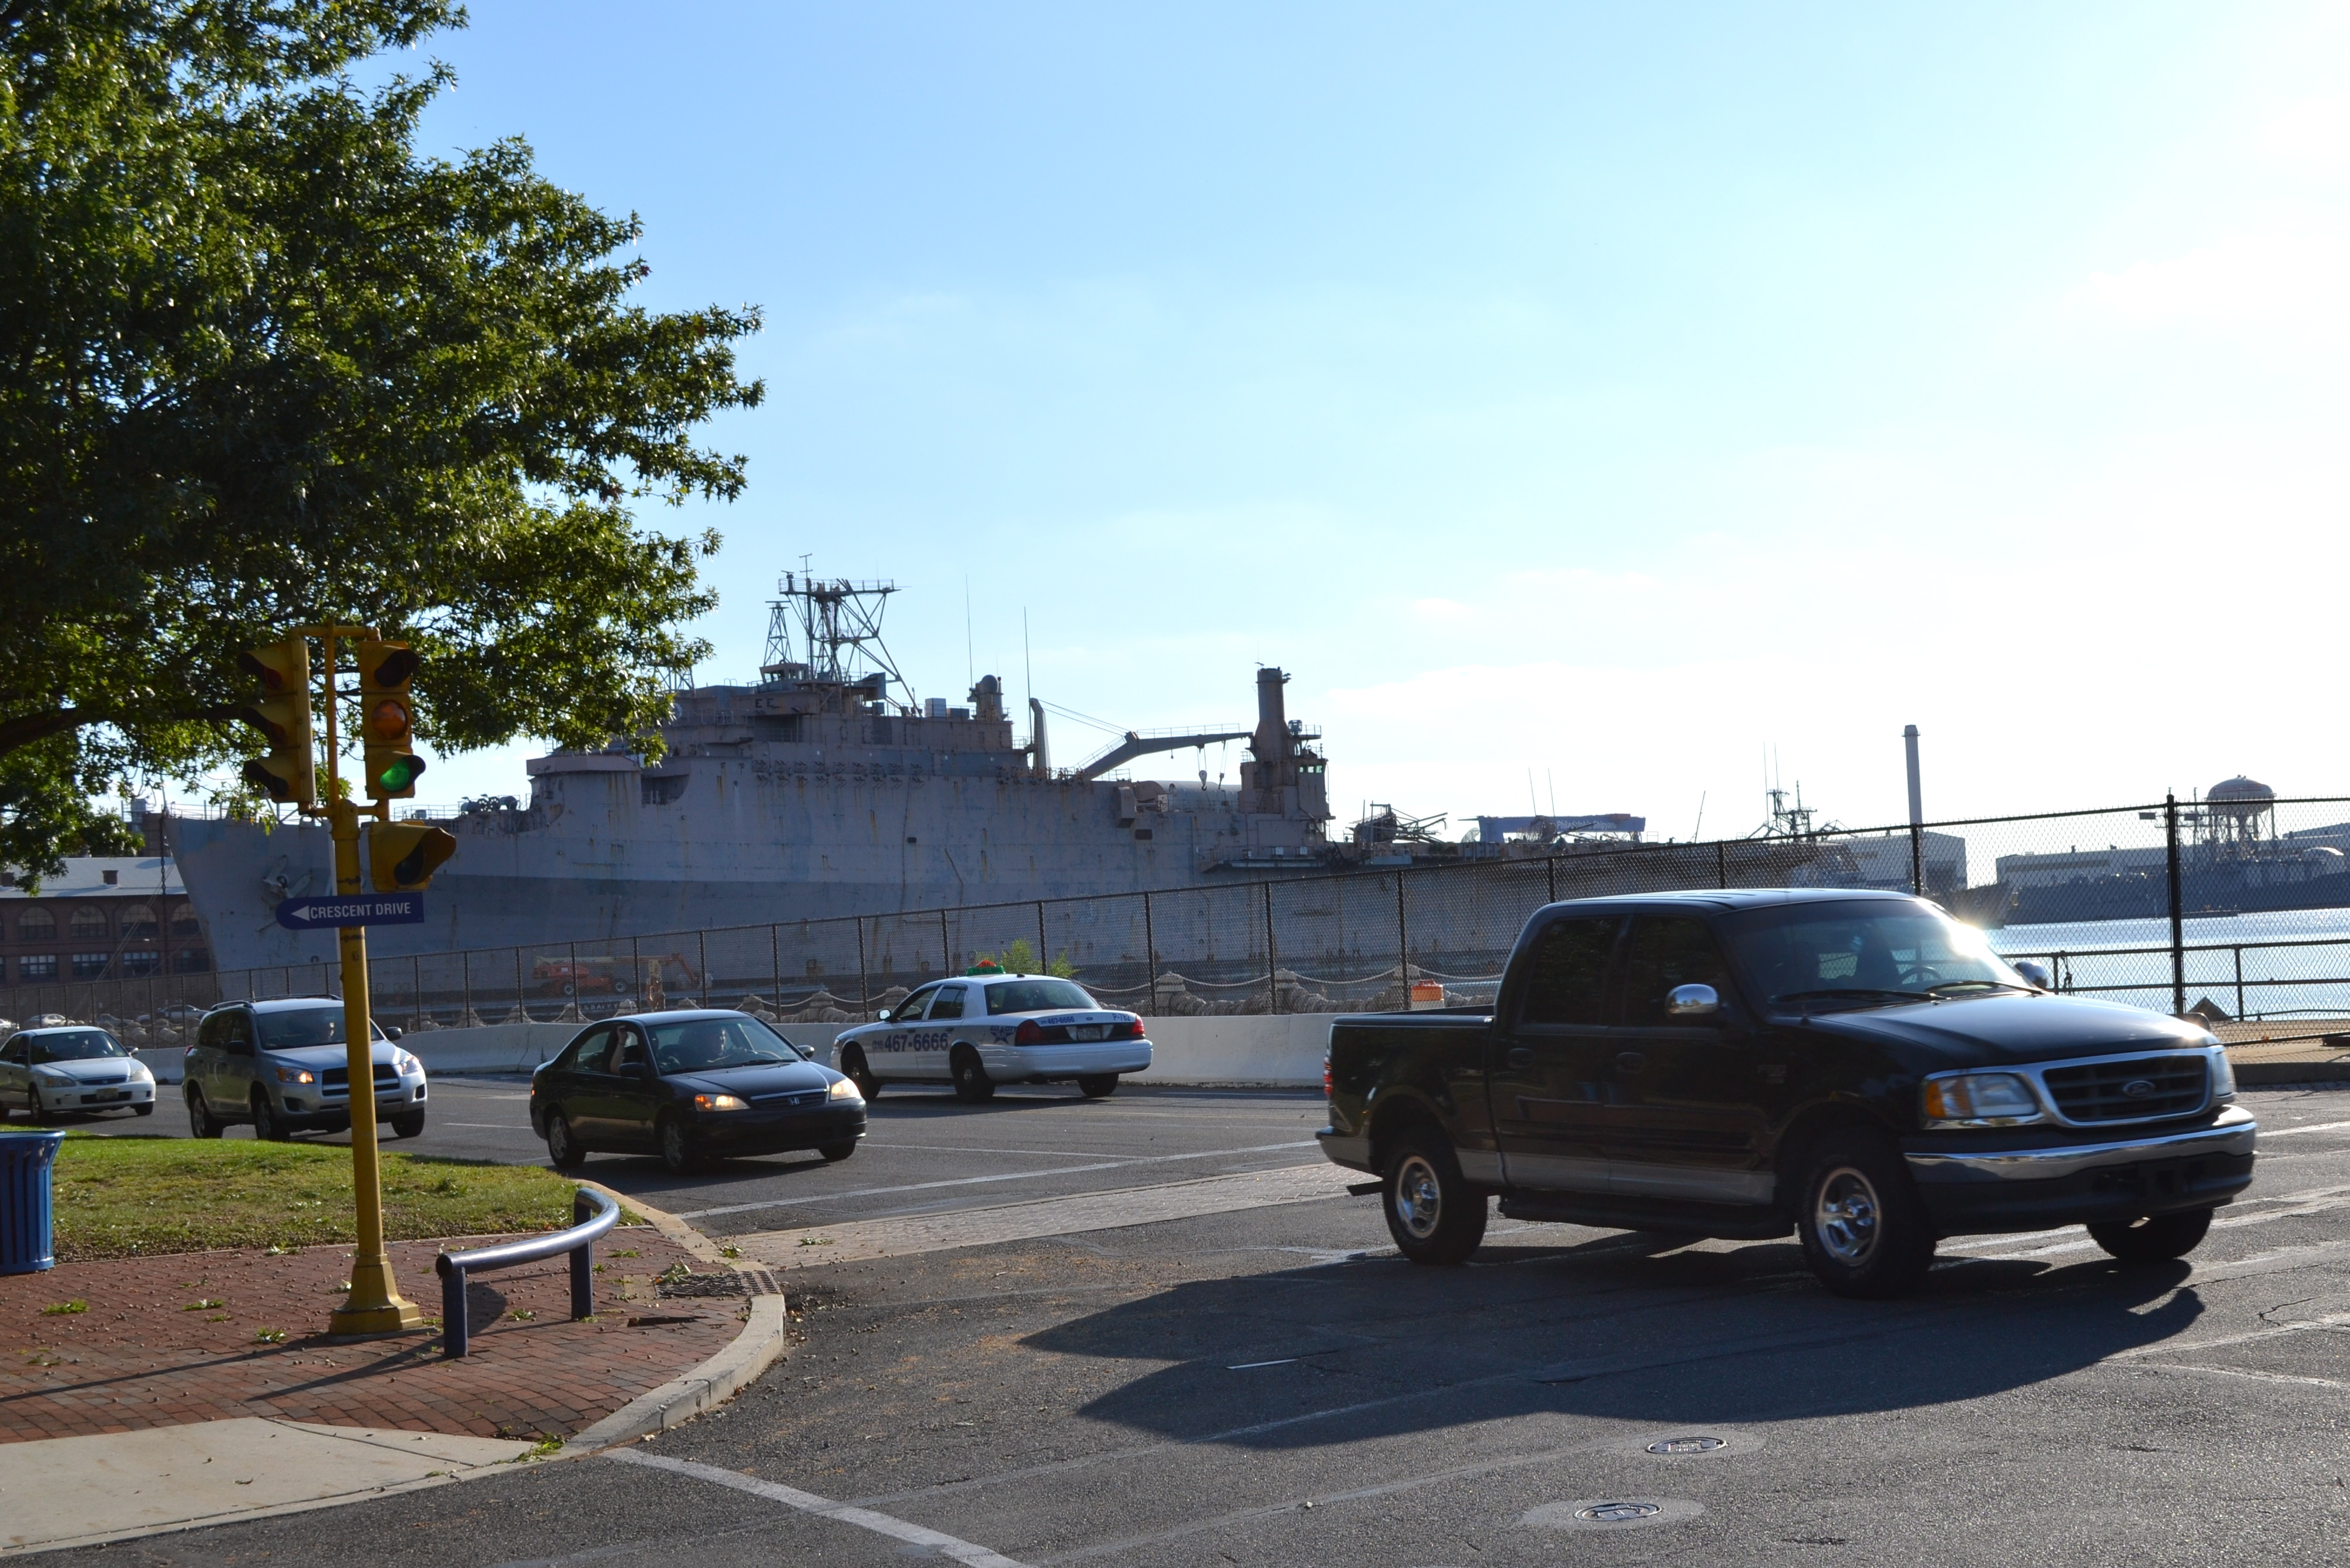 A majority of the Navy Yard's employees still drive to and from work